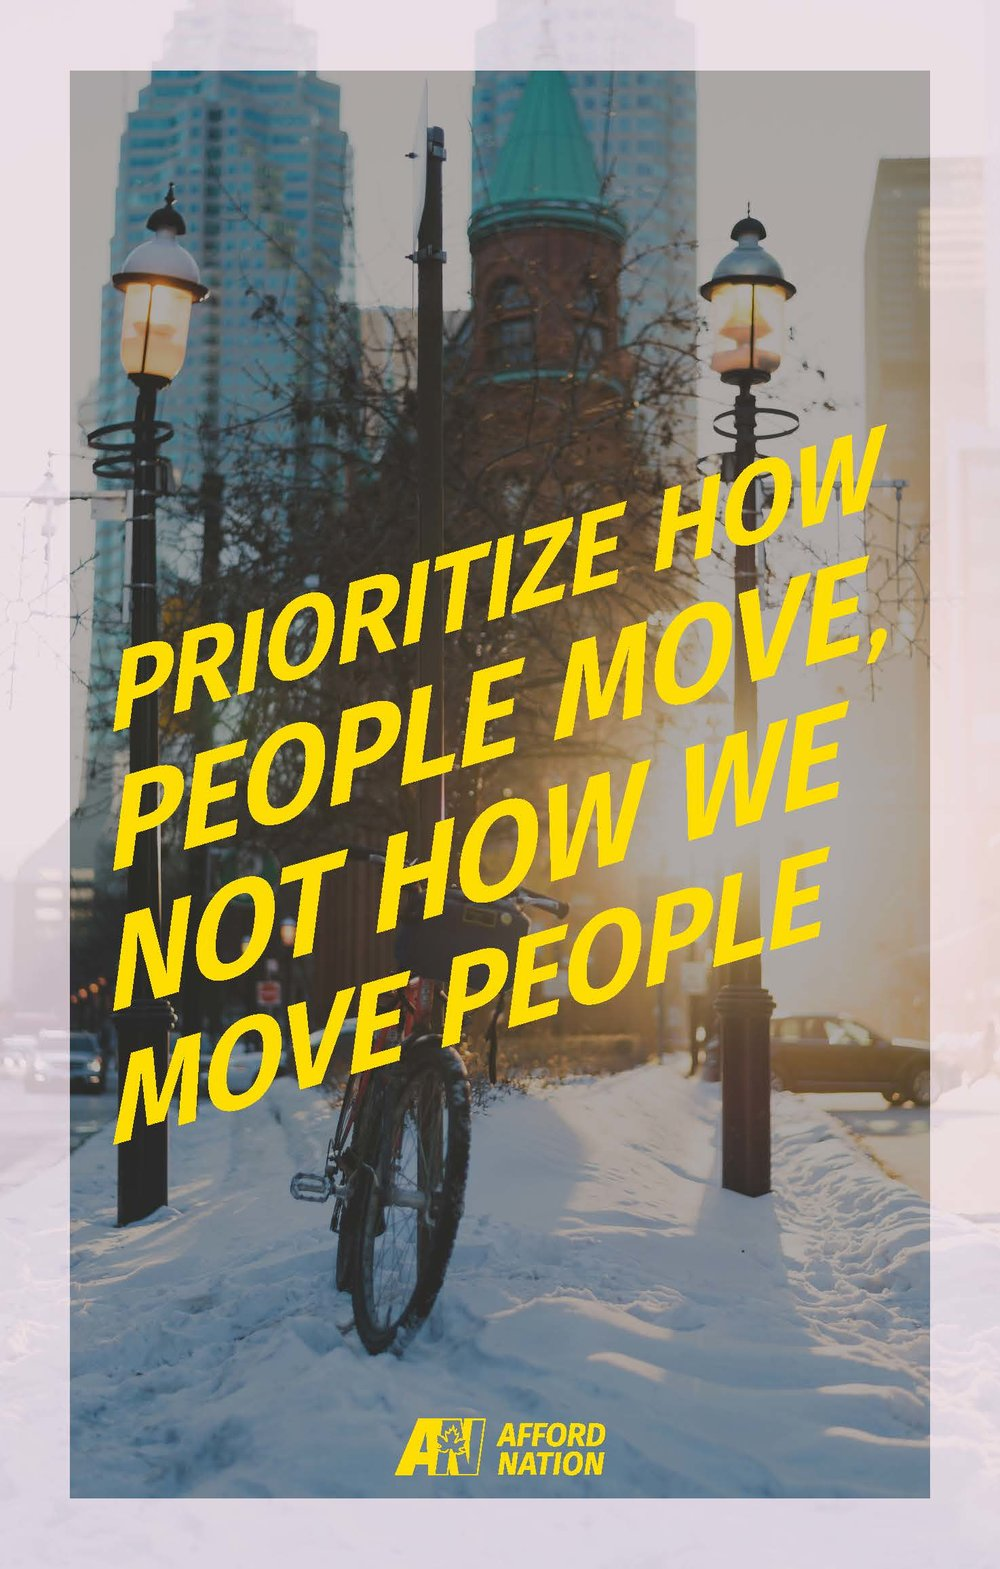 Prioritize how people move, not how we move people